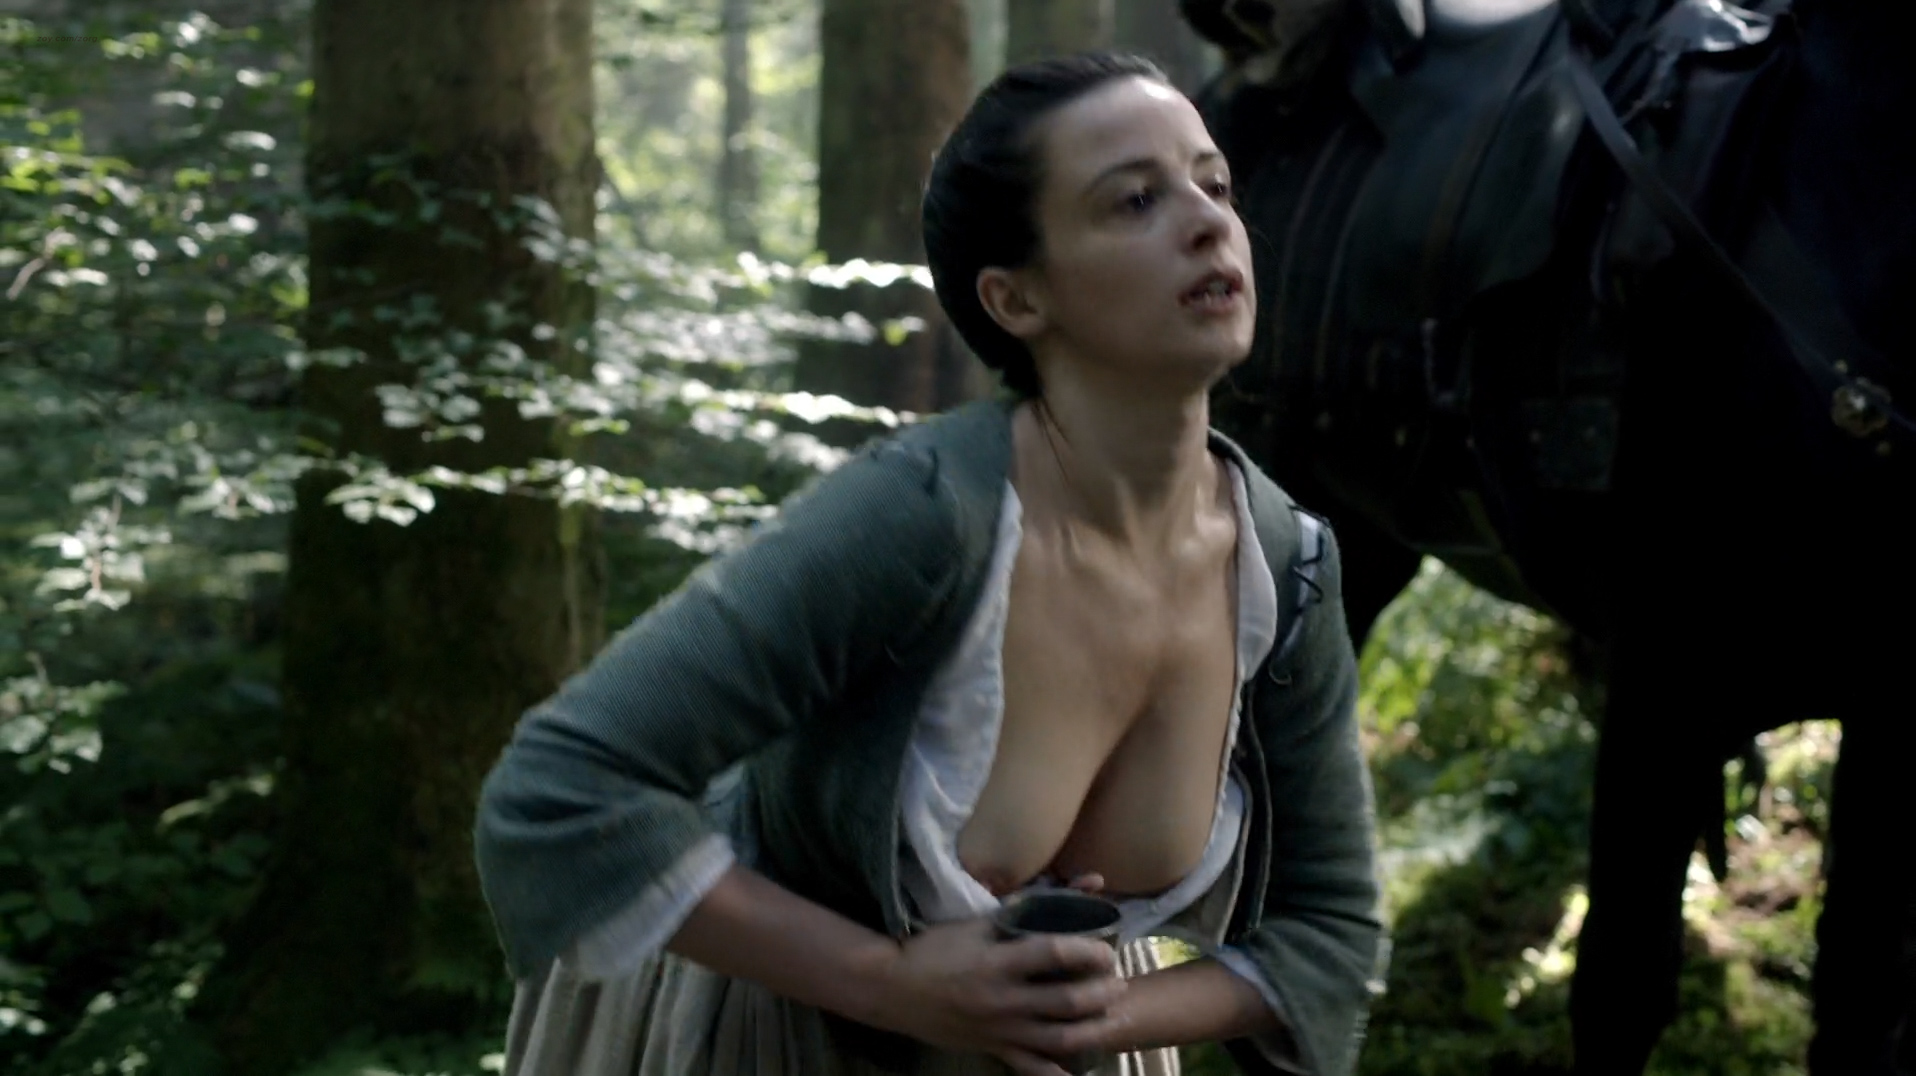 Laura Donnelly nude topless milking herself - Outlander (2015) s1e14 hd720-1080p (2)